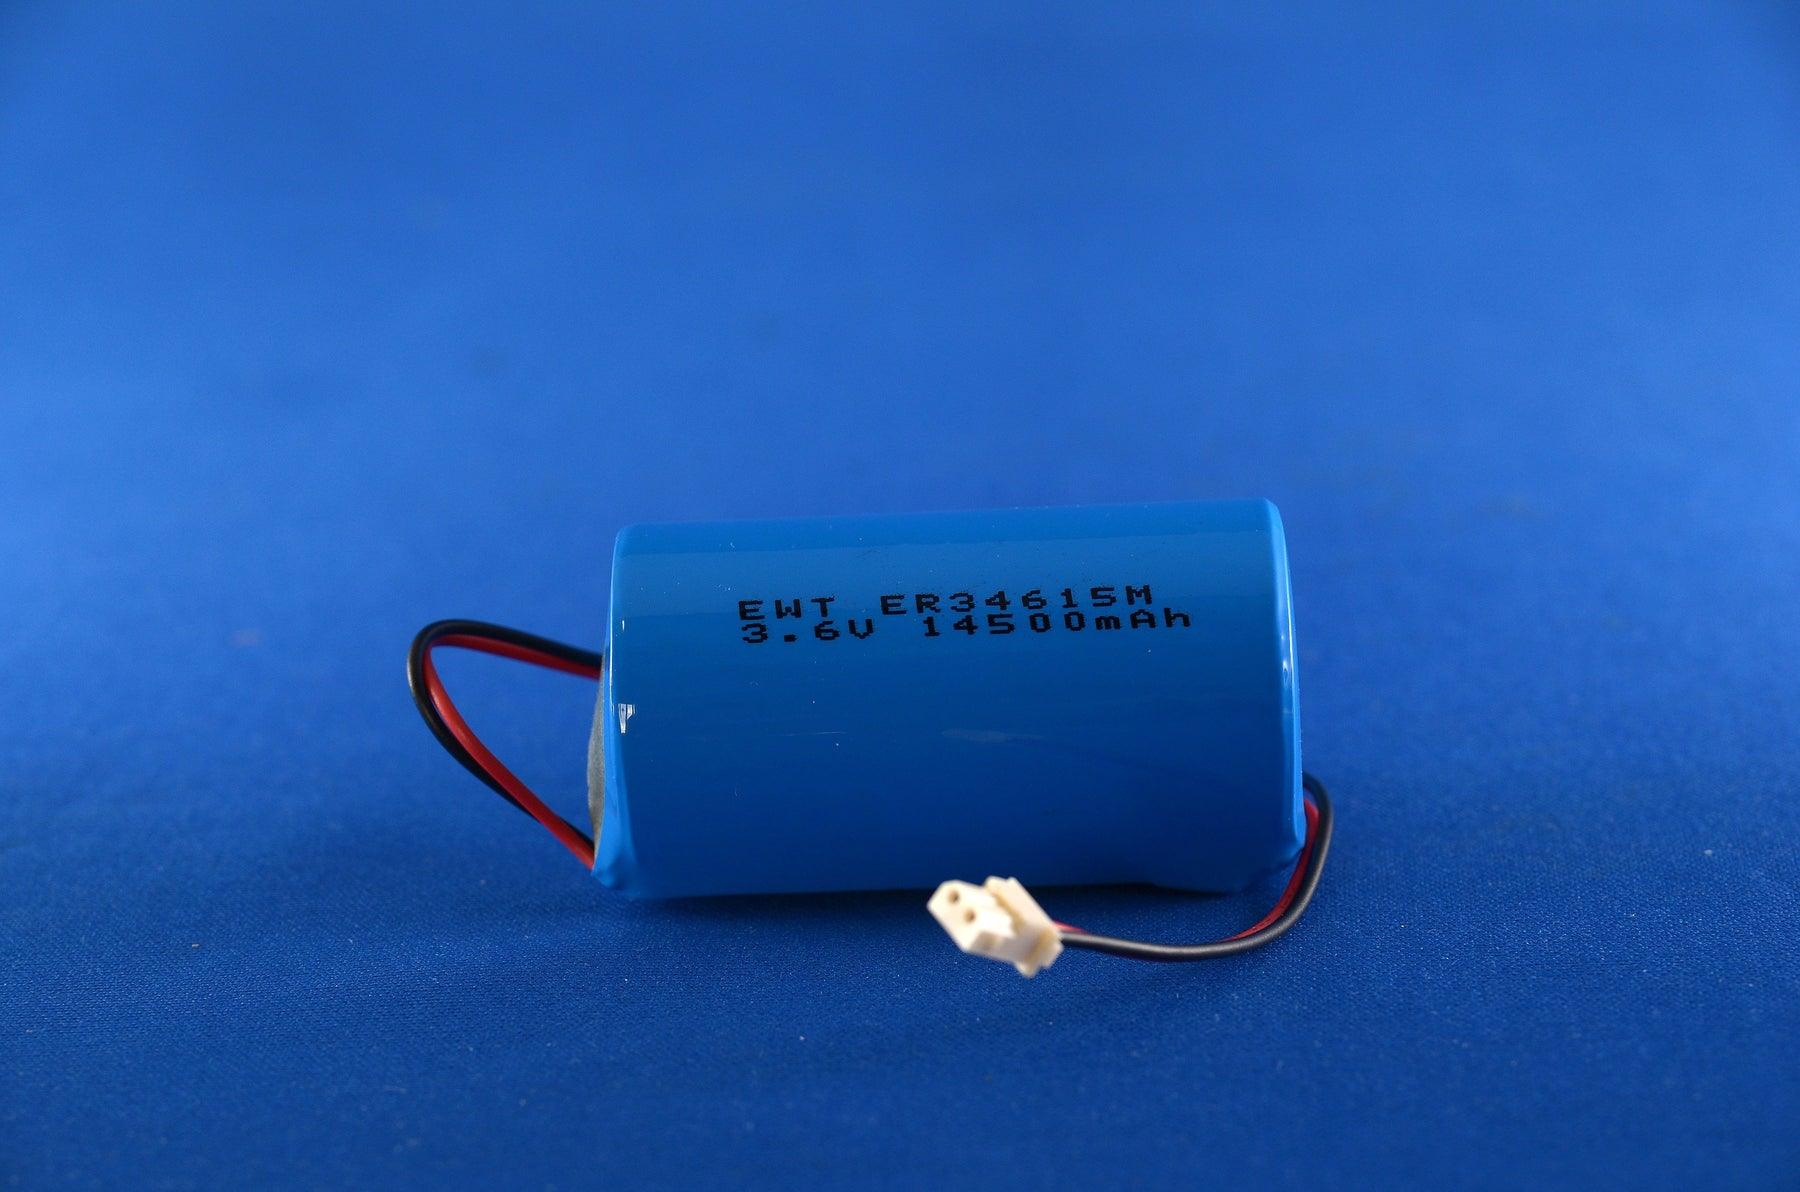 CR34615M Battery, 3.6 V, D, Lithium Thionyl Chloride from the Batteryworldshop.com